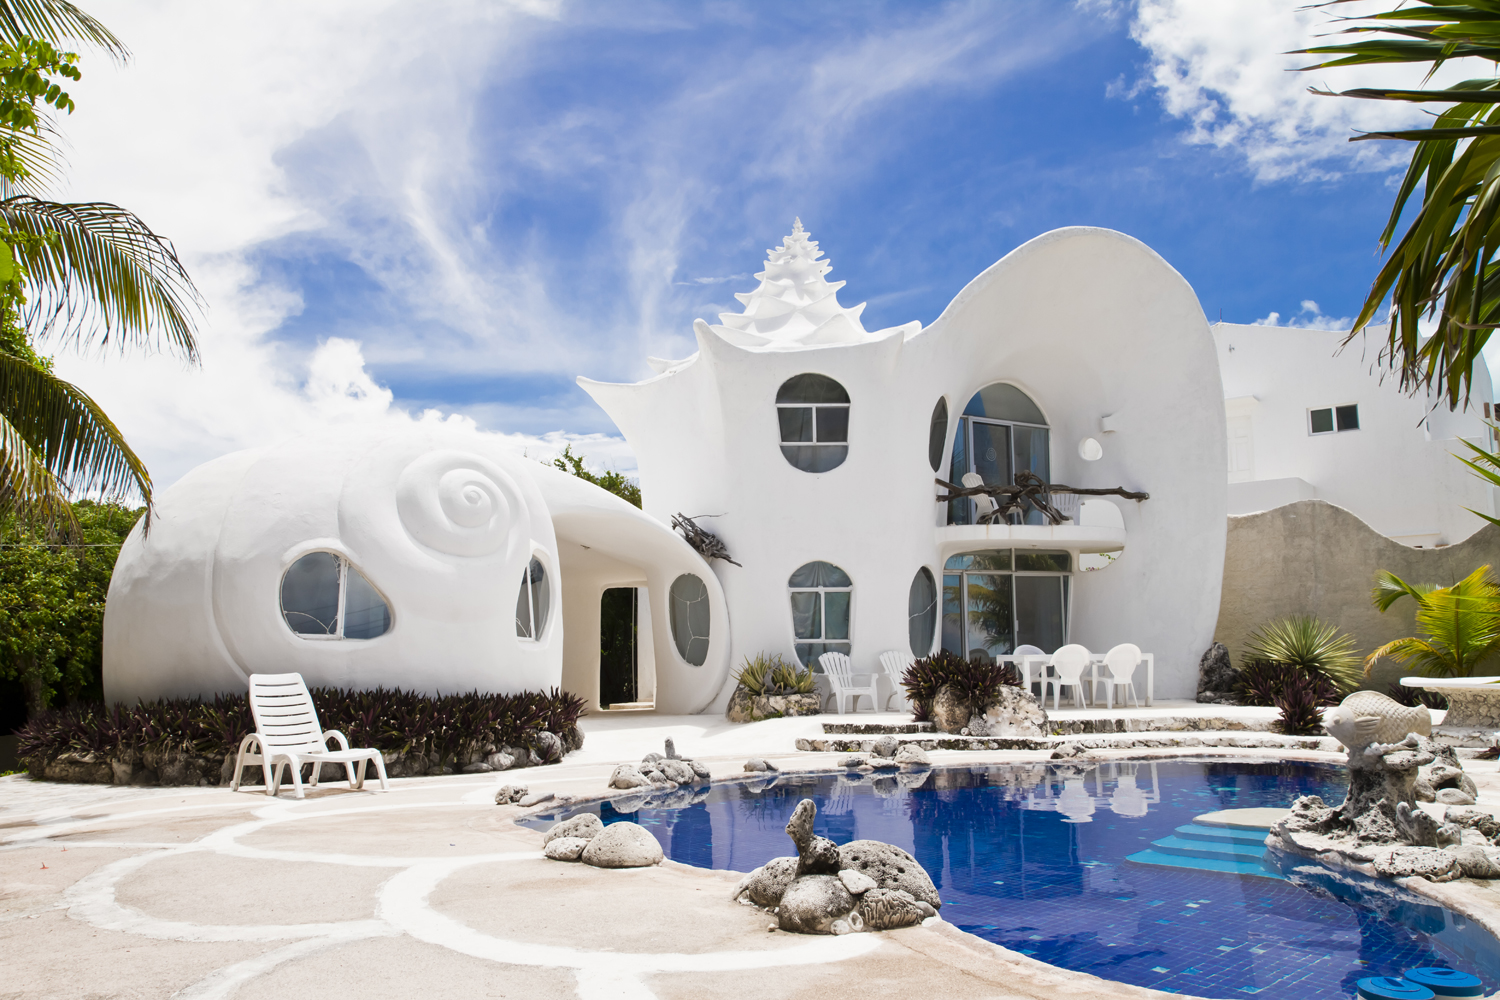 Coolest House In The World 2015 airbnb luxury 2015 listing: the seashell house, casa caracol